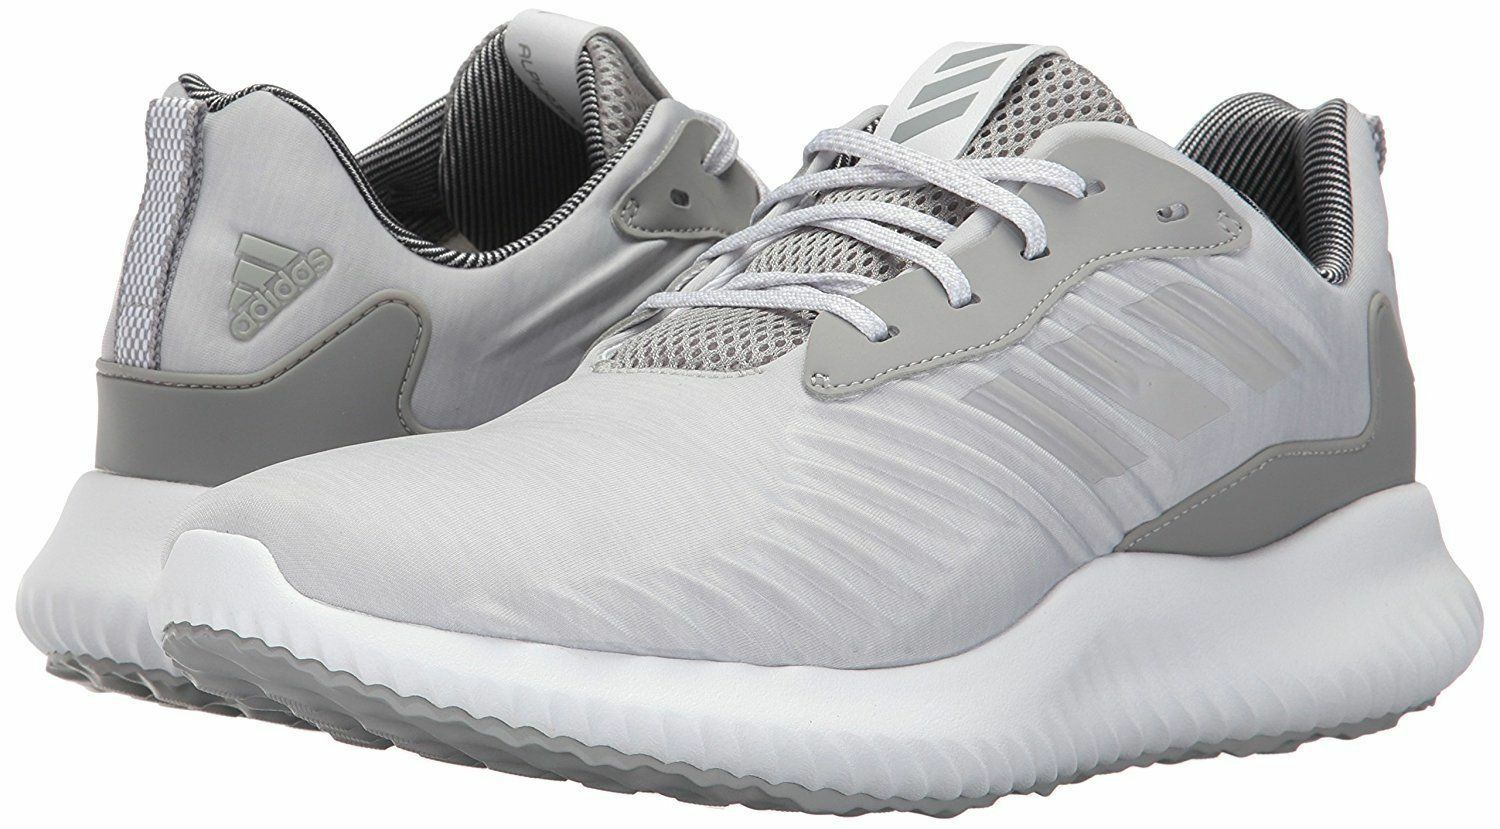 ADIDAS ALPHABOUNCE RC LOW RUNNING SNEAKERS MEN 11 SHOES GREY B42863 SIZE 11 MEN NEW 72bf4f